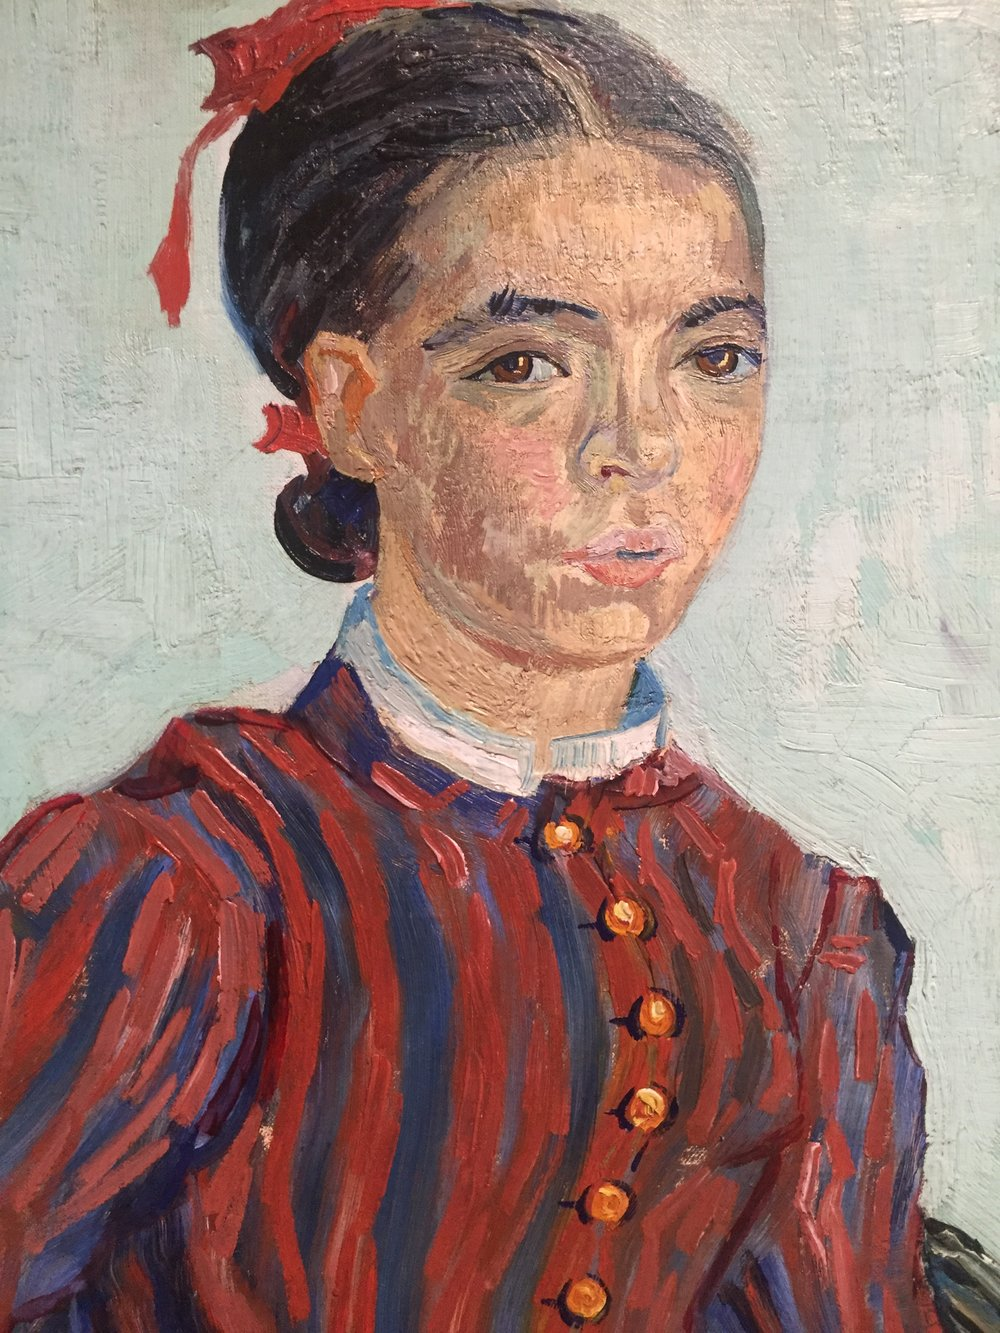 van gogh red dress face detail.JPG